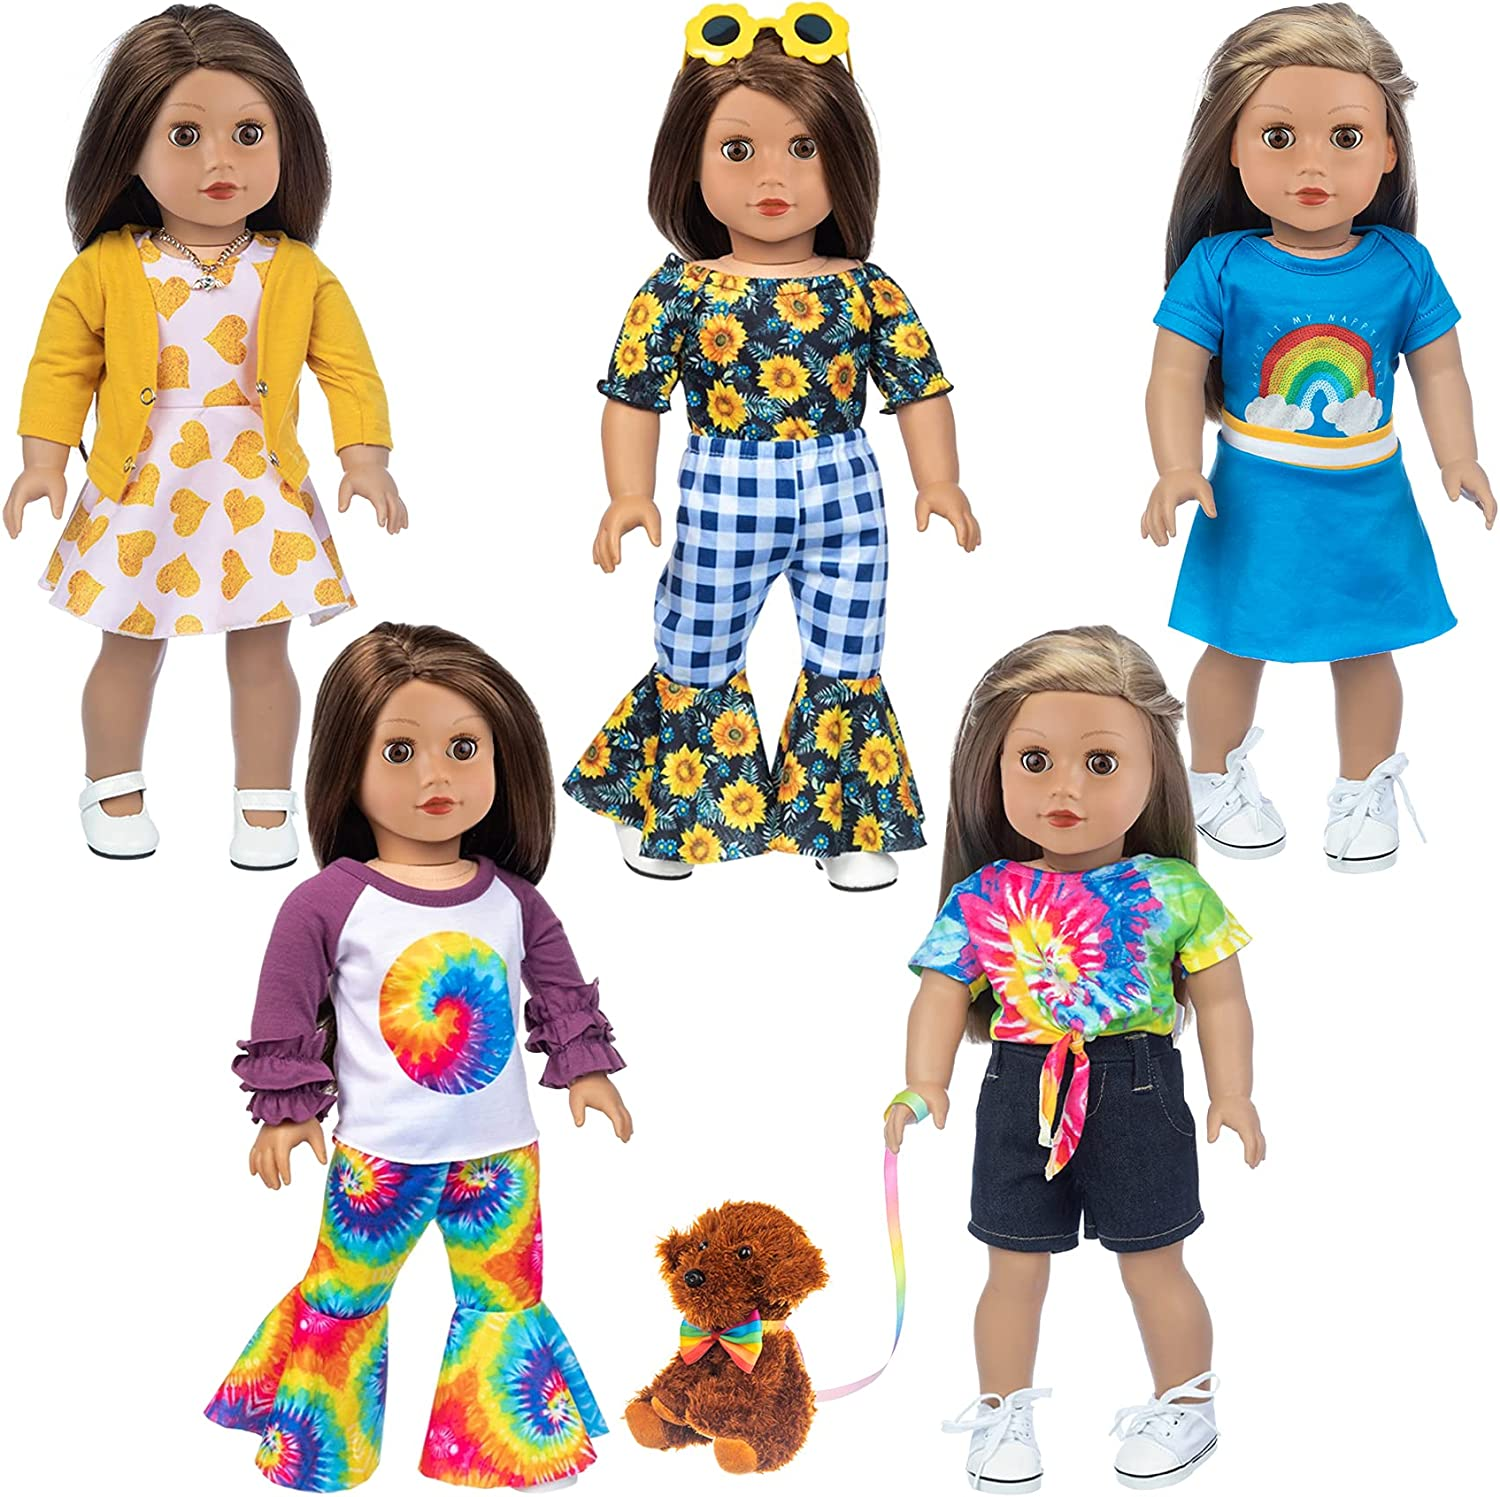 Ecore Fun Deluxe 5 Sets American Factory outlet 18 and Accessories Doll Inch Clothes 1